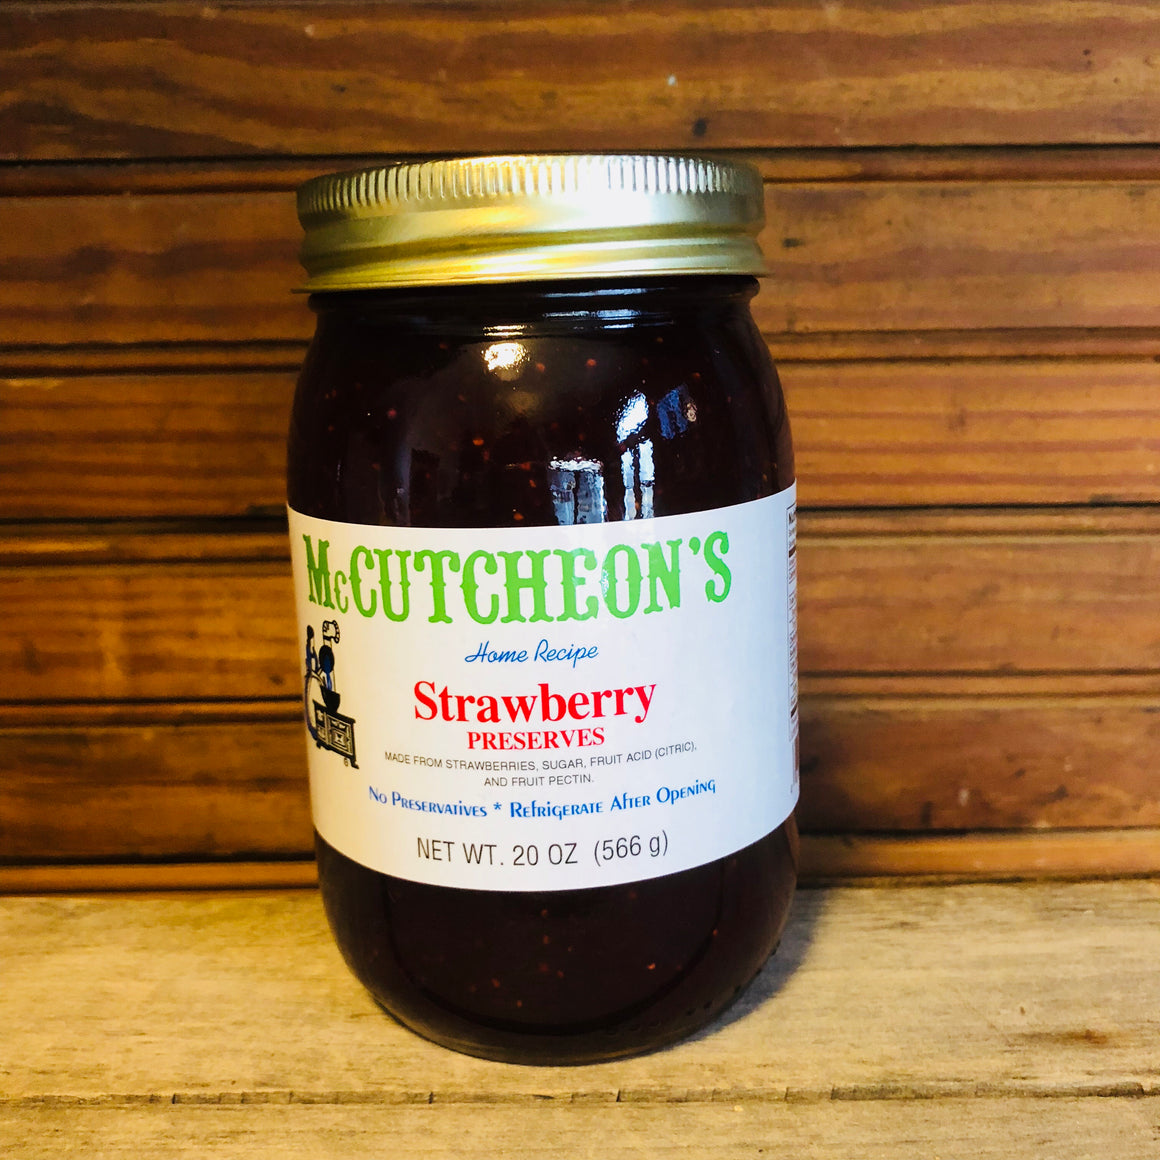 McCutcheon's Old-Fashioned Preserves